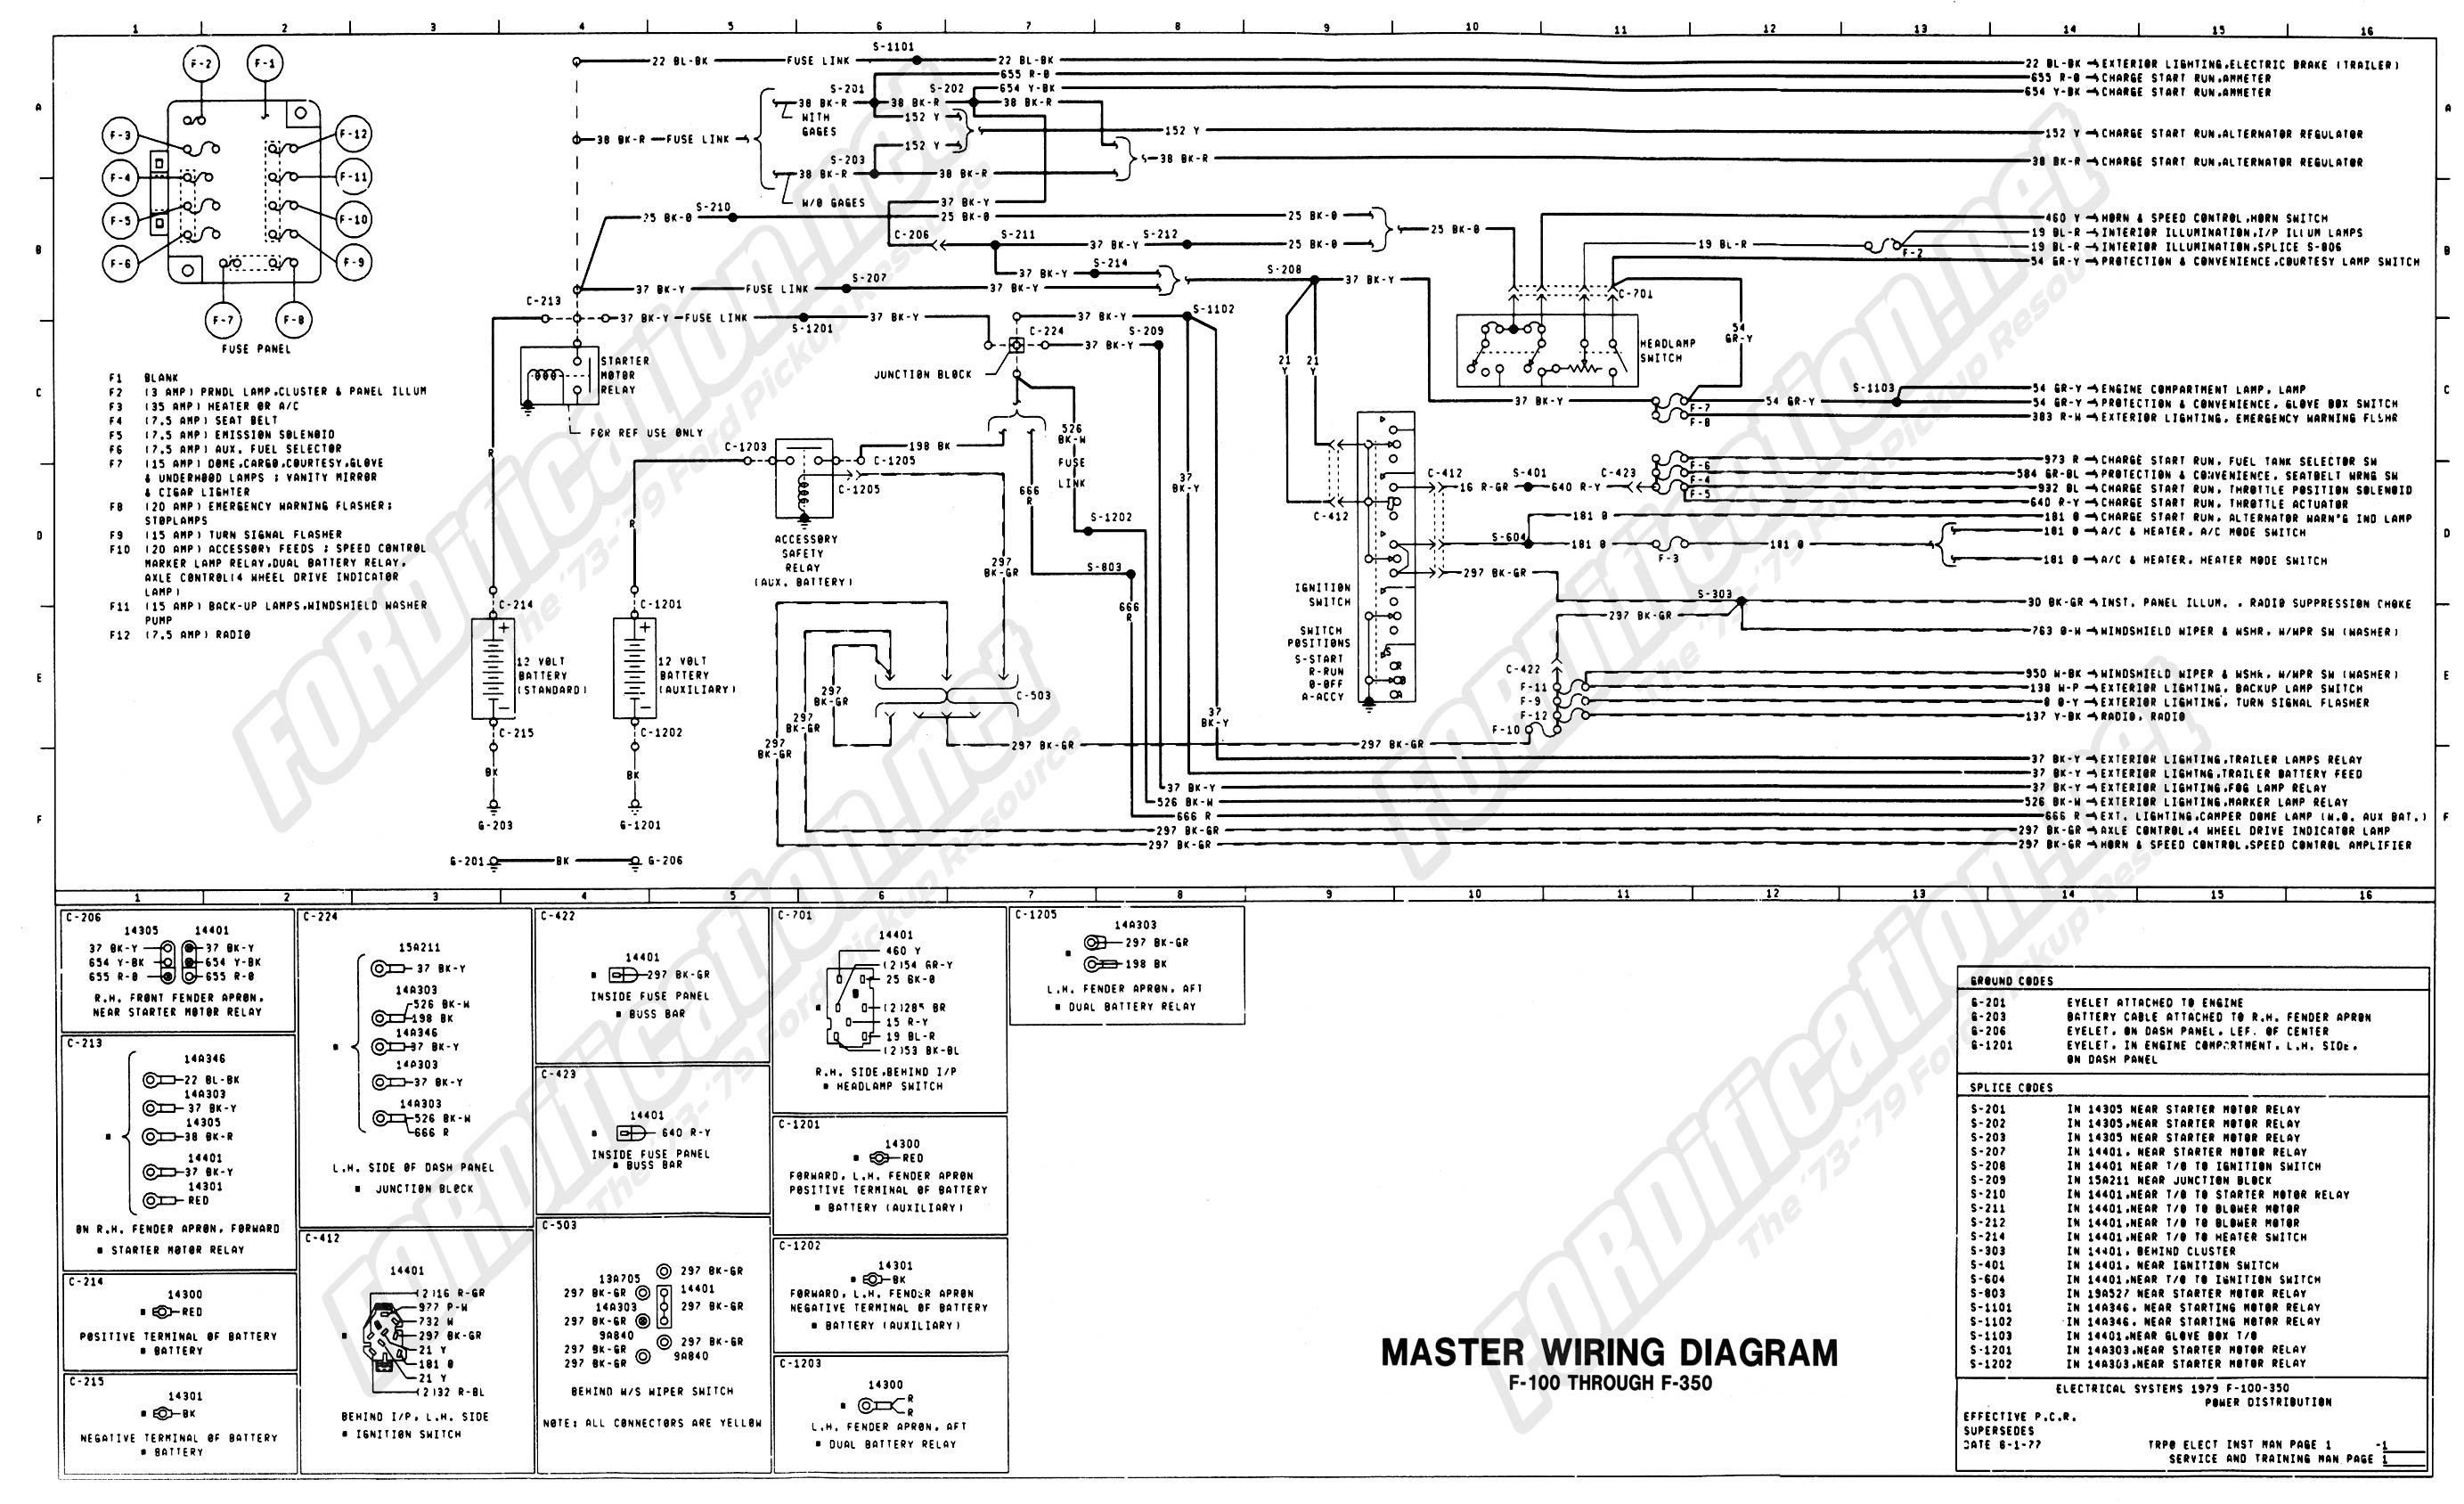 2006 International 4300 Wiring Diagram. Diagrams. Wiring